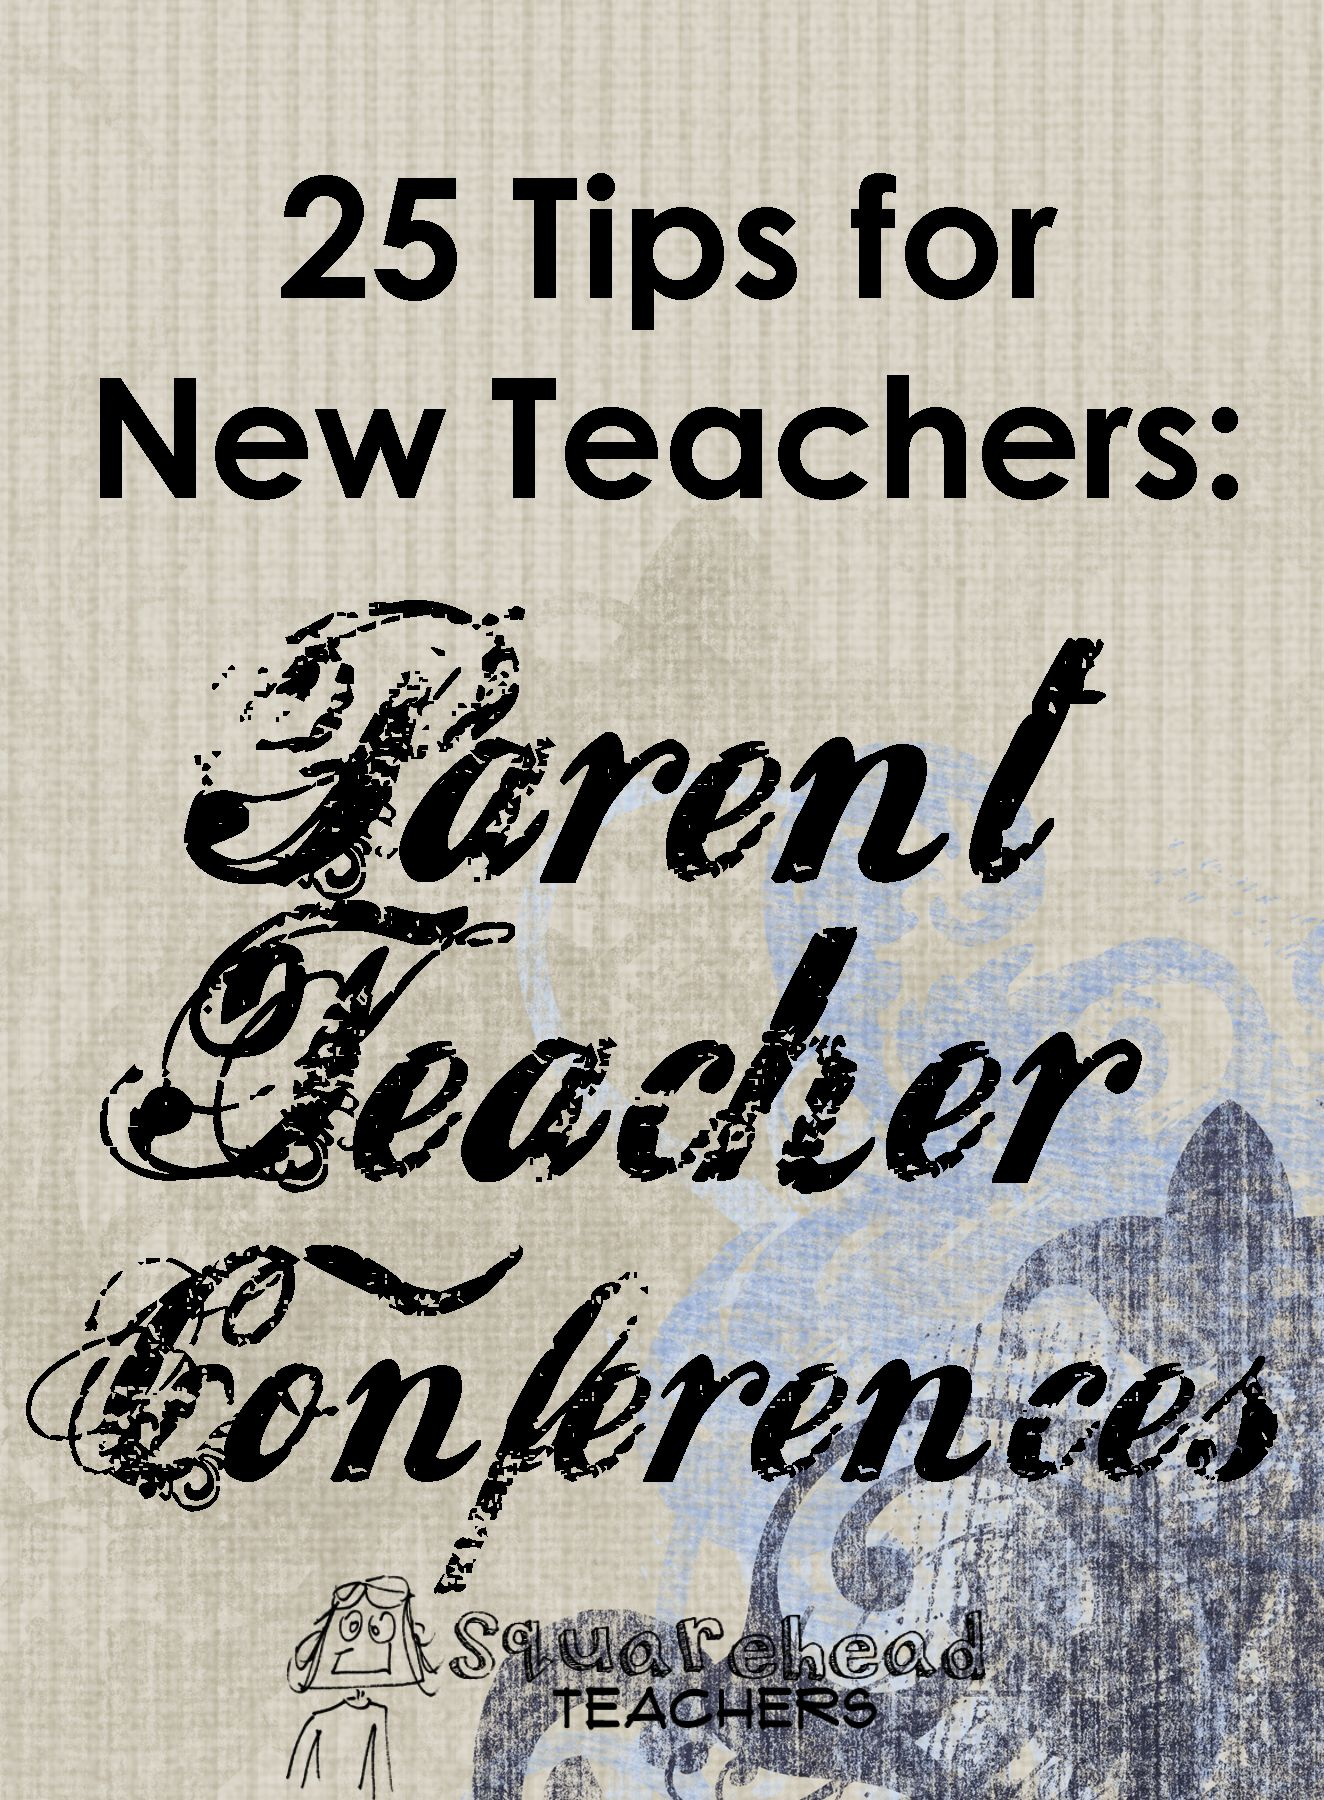 Parent teacher conferences ptc can be intimidating for new parent teacher conferences ptc can be intimidating for new teachers here are 25 tips to help you survive ptc and get the most out of it spiritdancerdesigns